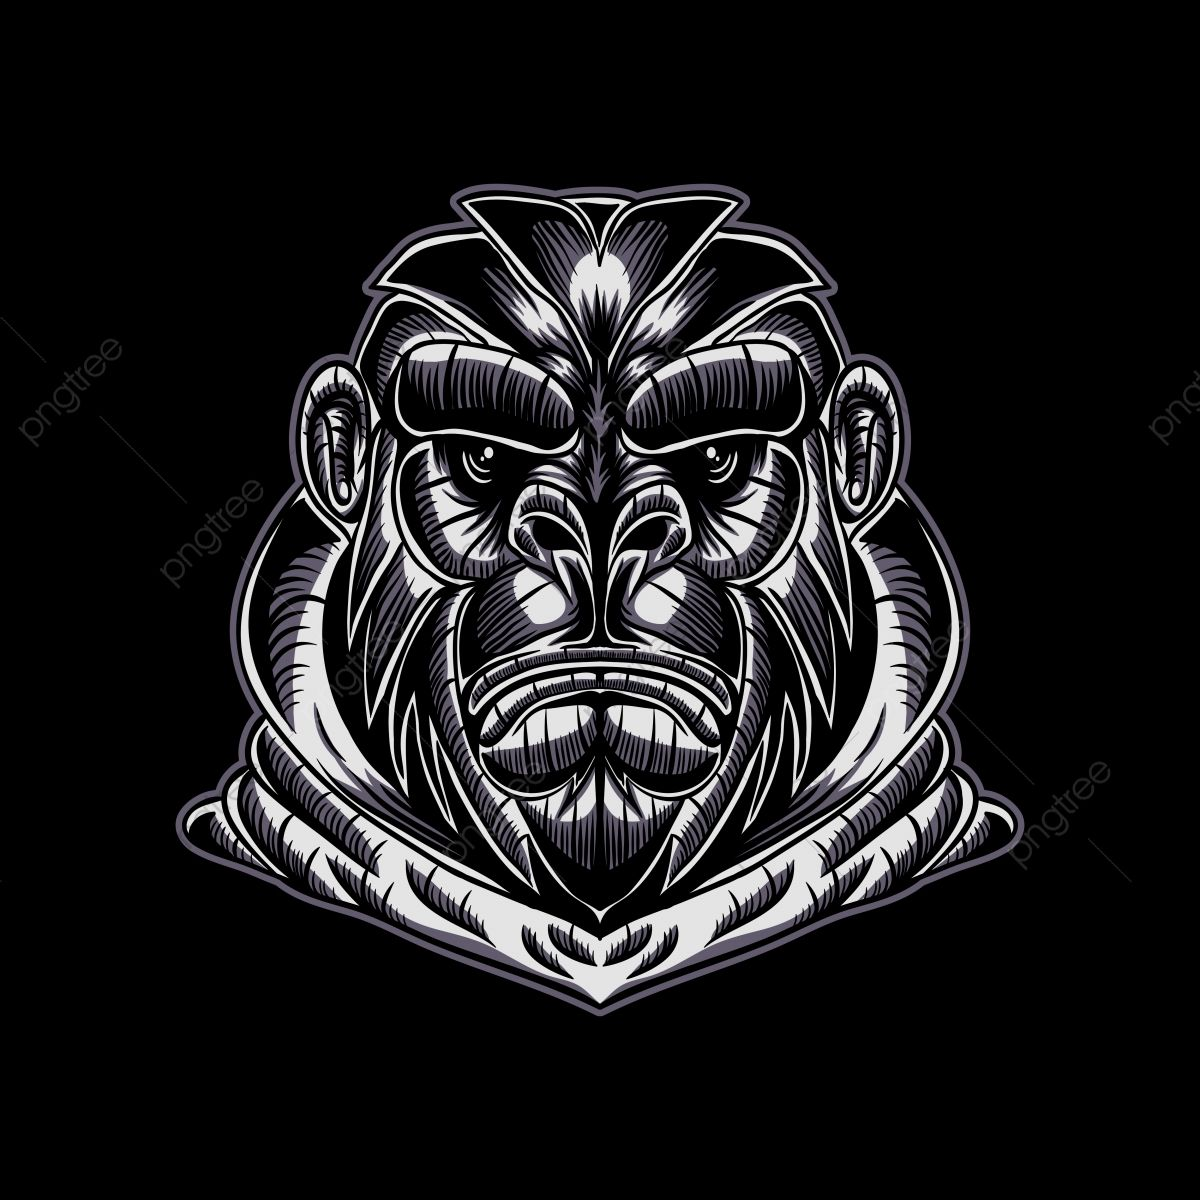 Gorilla Face Vector Illustration For Your Company Or Brand